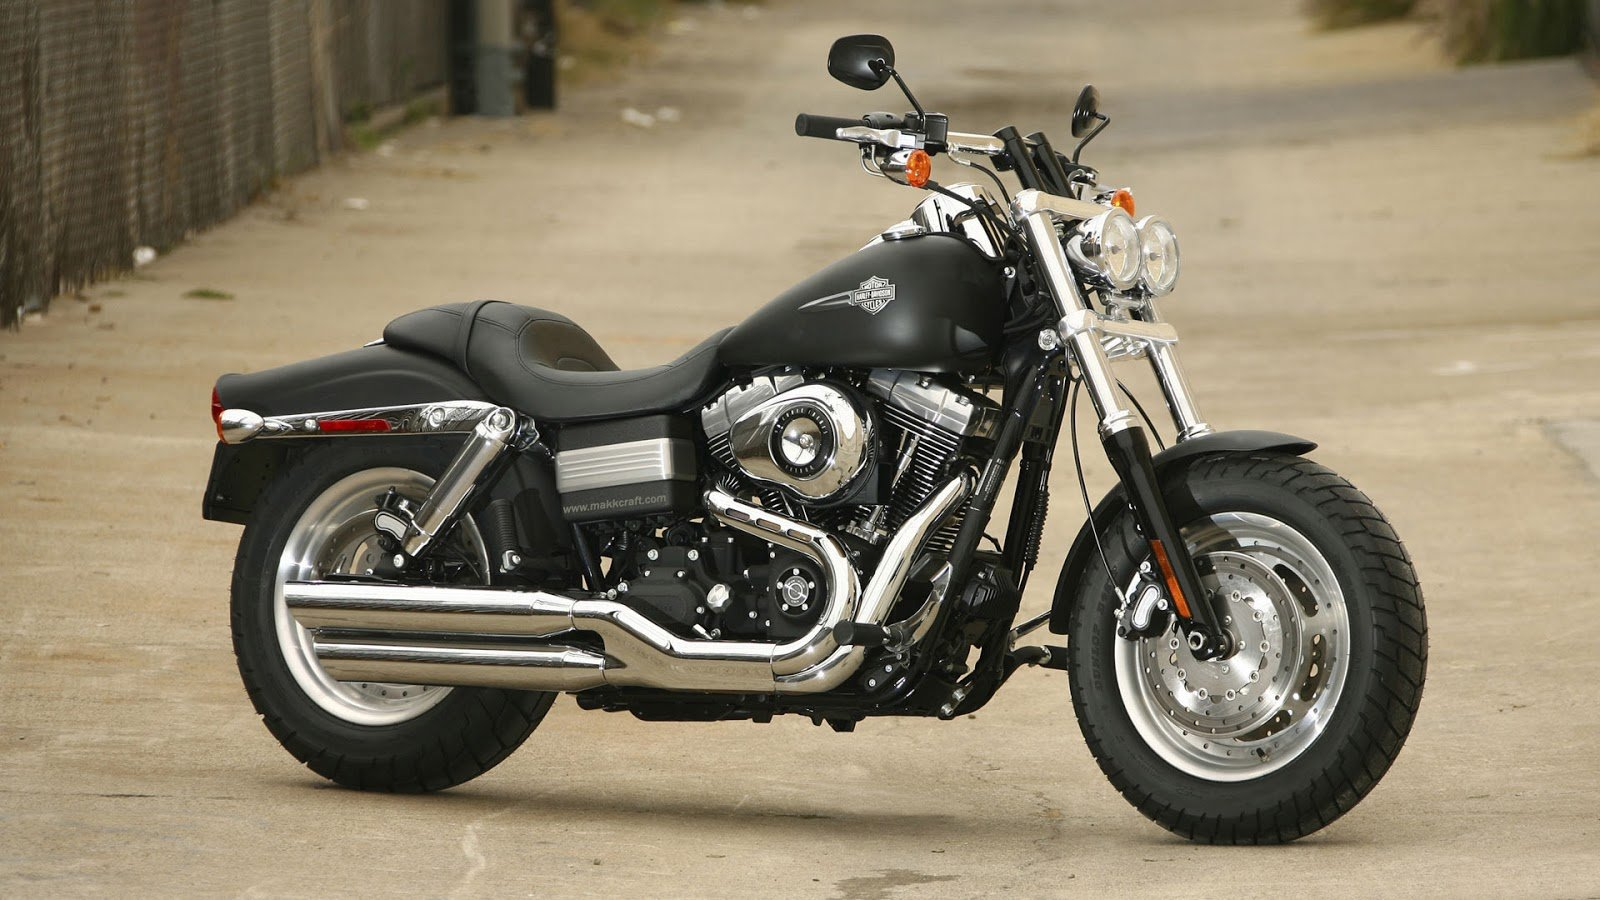 Harley Davidson Fat Bob HD Wallpapers High Definition iPhone HD 1600x900